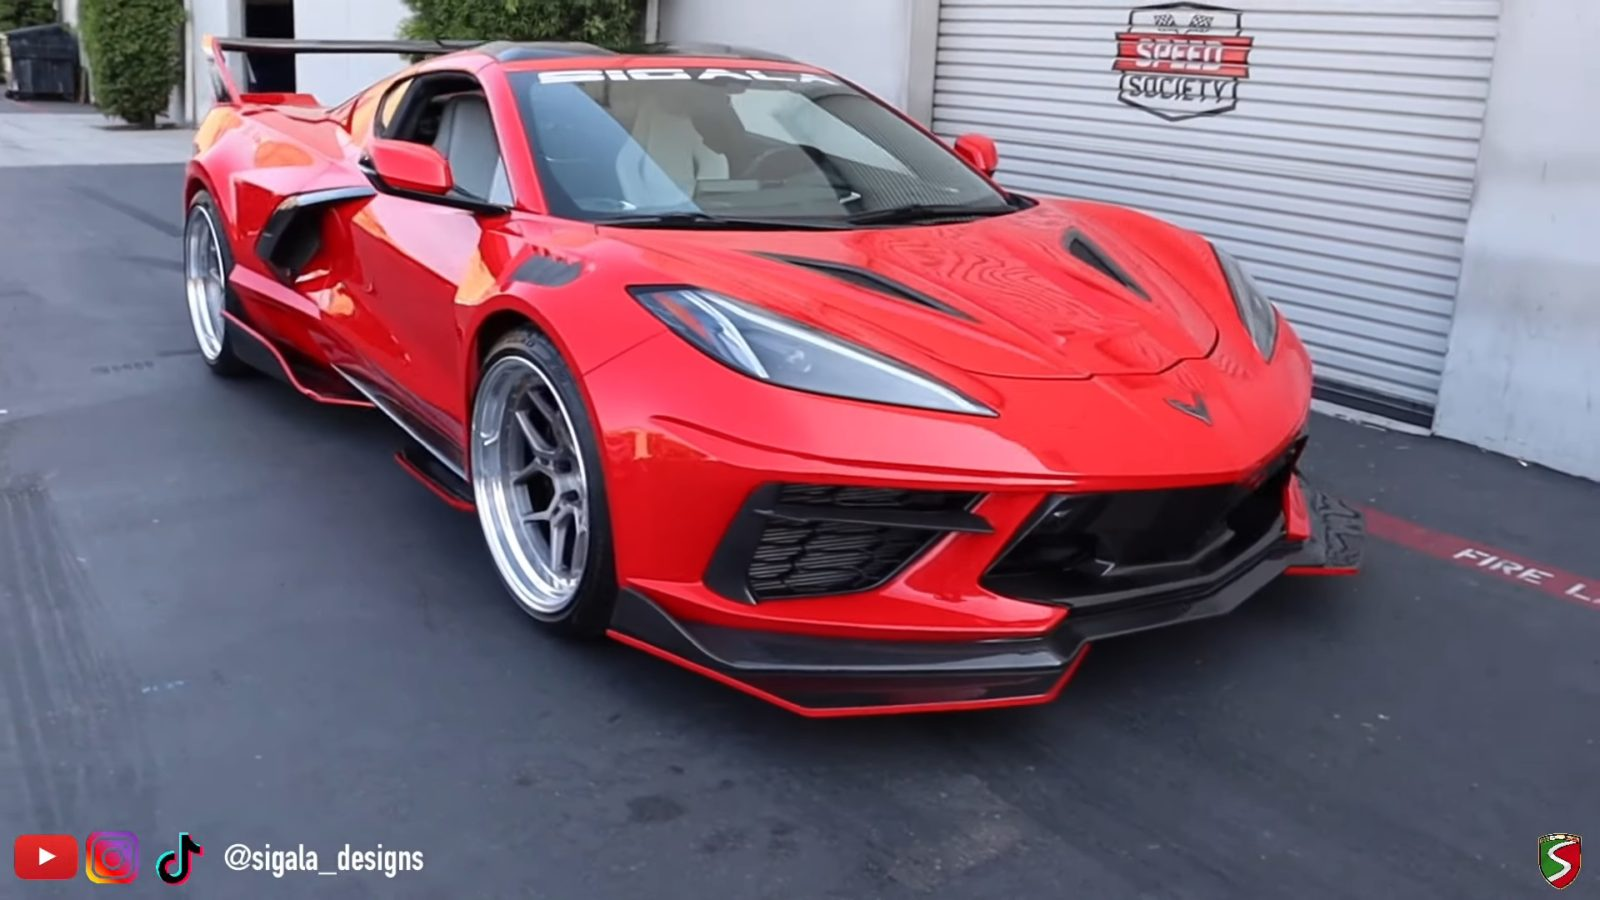 this-c8-corvette-widebody-kit-looks-crazy,-sigala-designs-c8rr-costs-$14,995